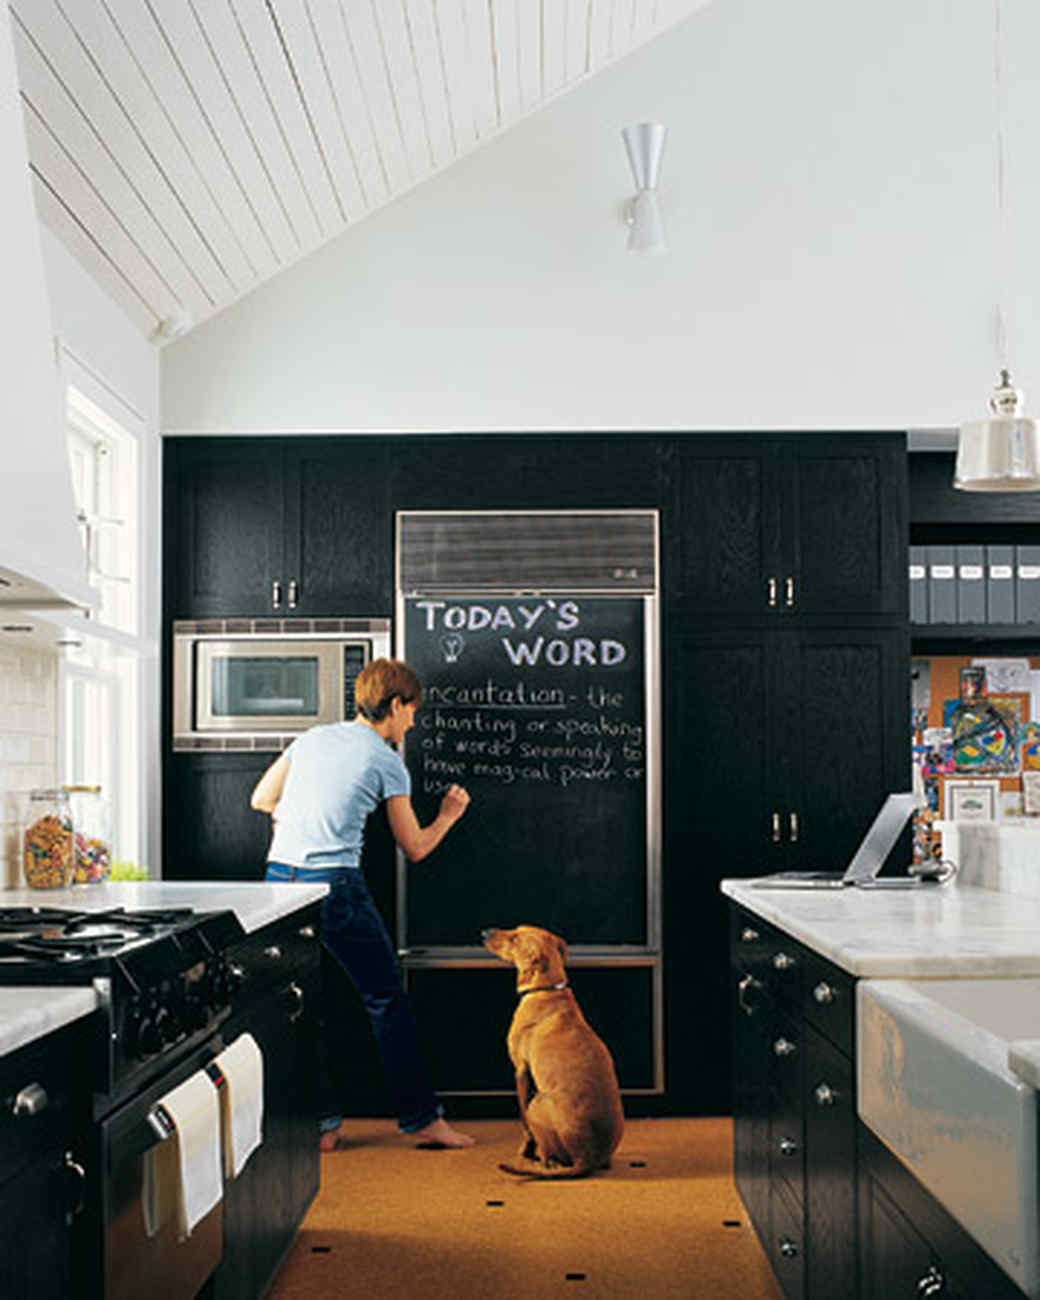 ml0903_0903_kitchen_dog.jpg